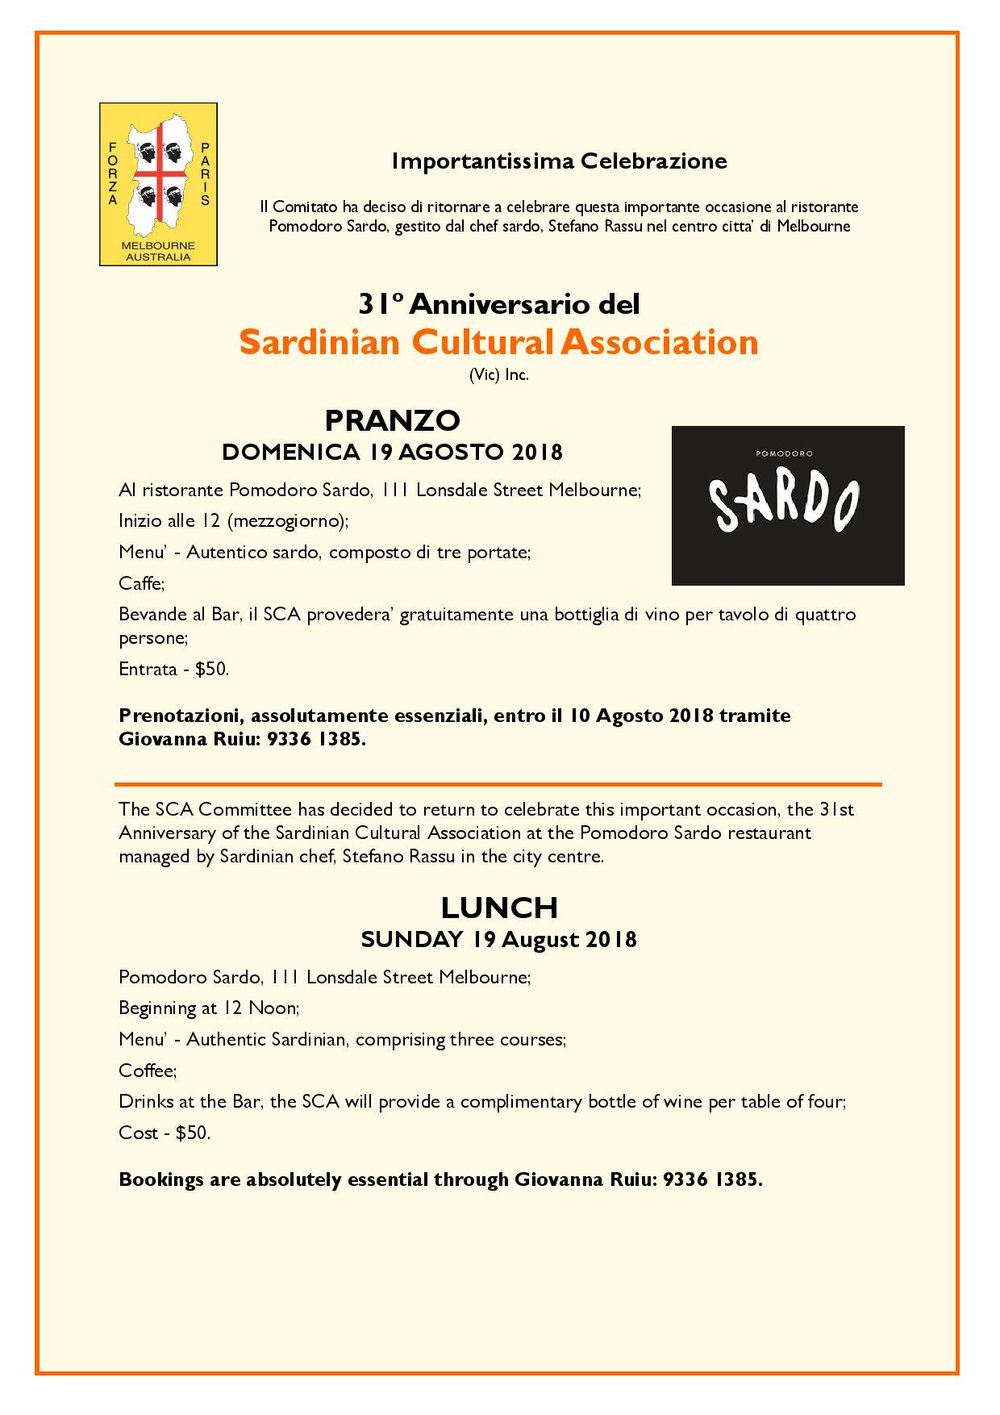 SCA 31st ANNIVERSARY LUNCH FLYER 2018-page-001.jpg